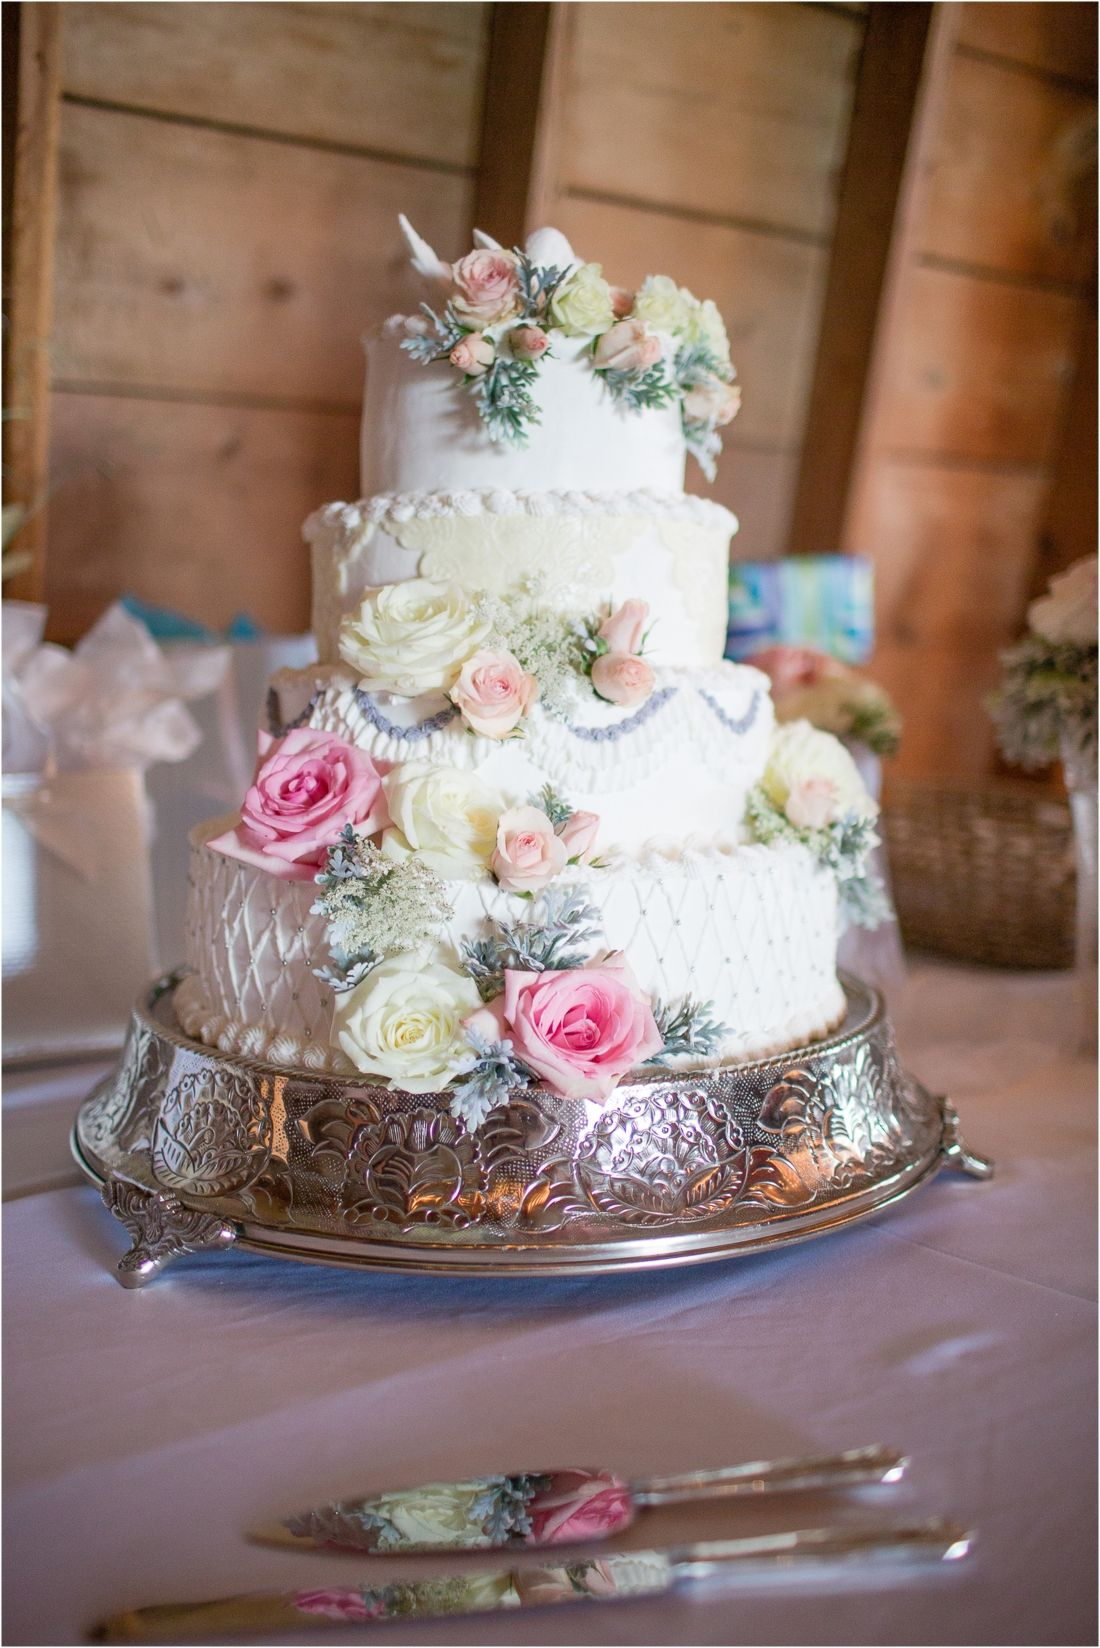 The Most Beautiful Wedding Cake In World